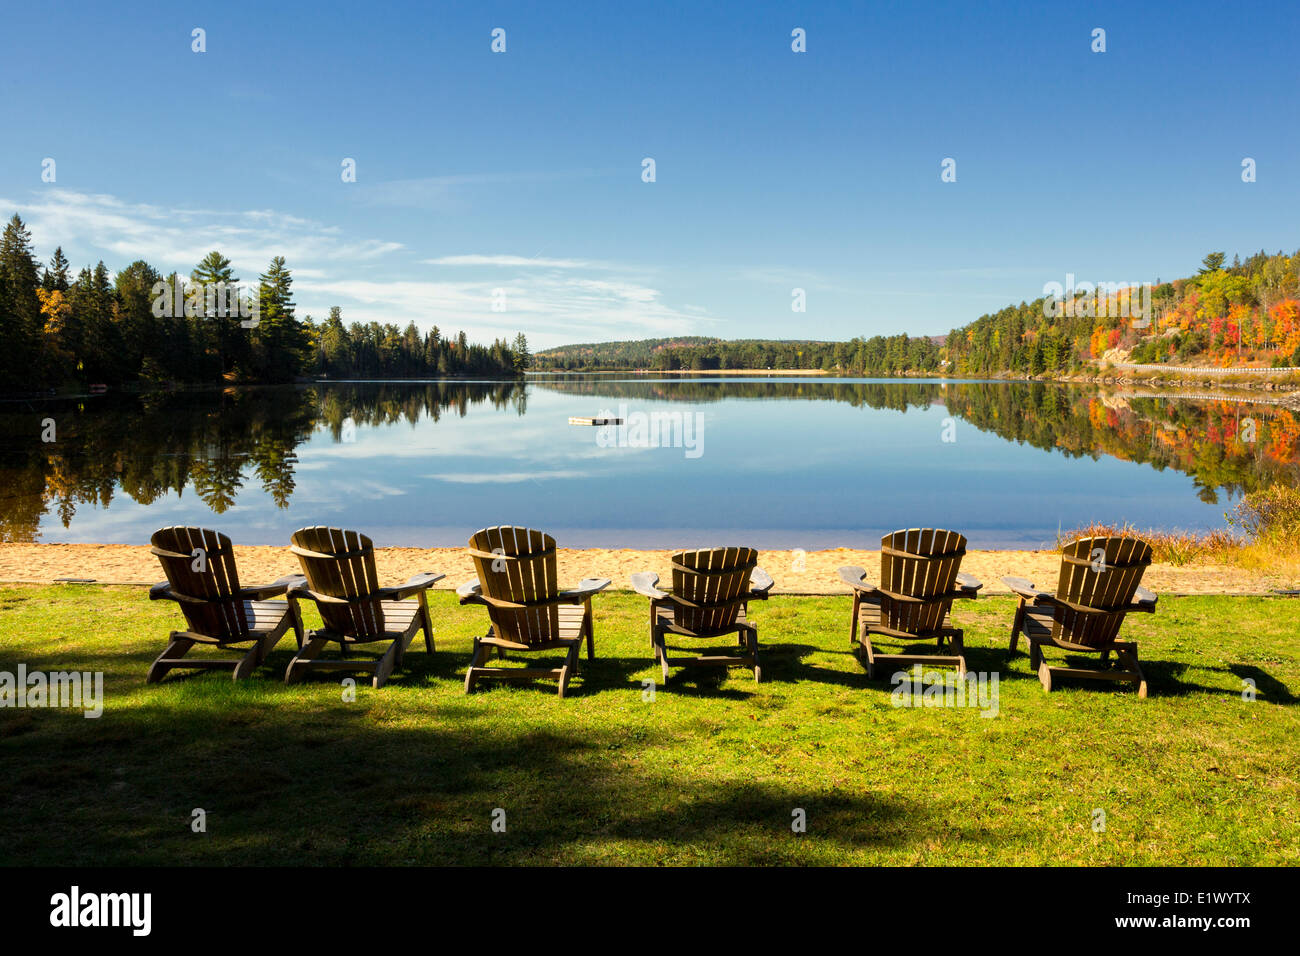 Muskoka chairs, Lake of Two Rivers, Killarney Lodge, Algonquin Provincial Park, Ontario, Canada - Stock Image